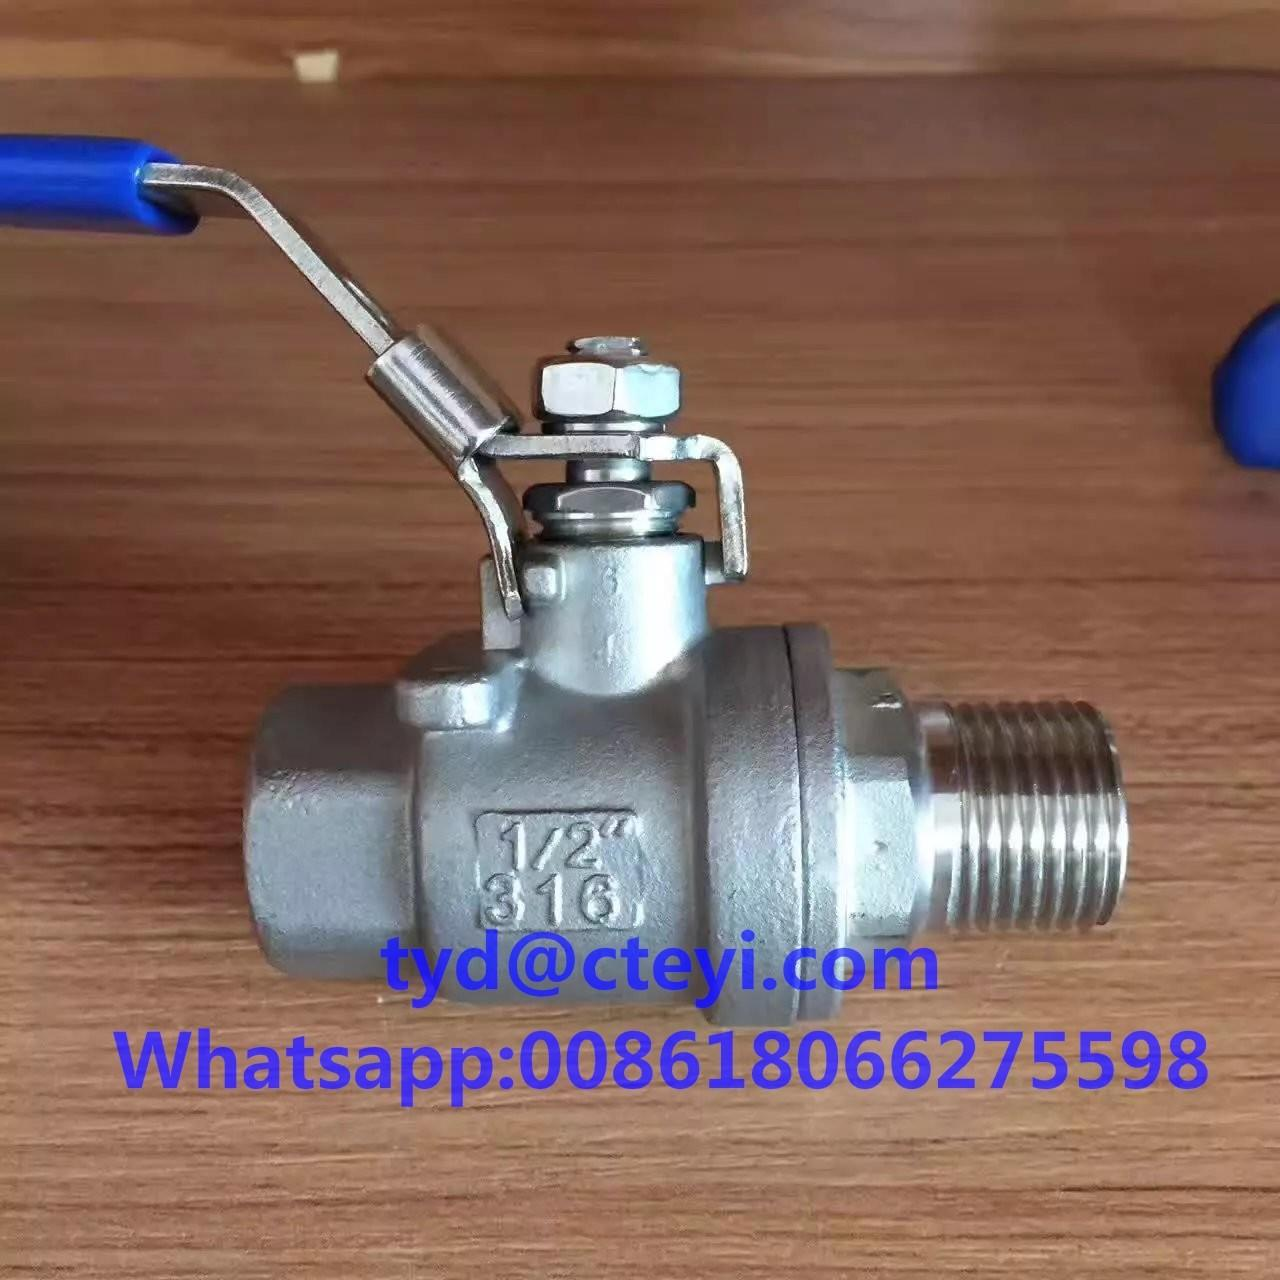 1000WOG 316 Stainless Steel Ball Valves , Full Port Male Female NPT Thread 2pc Ball Valve